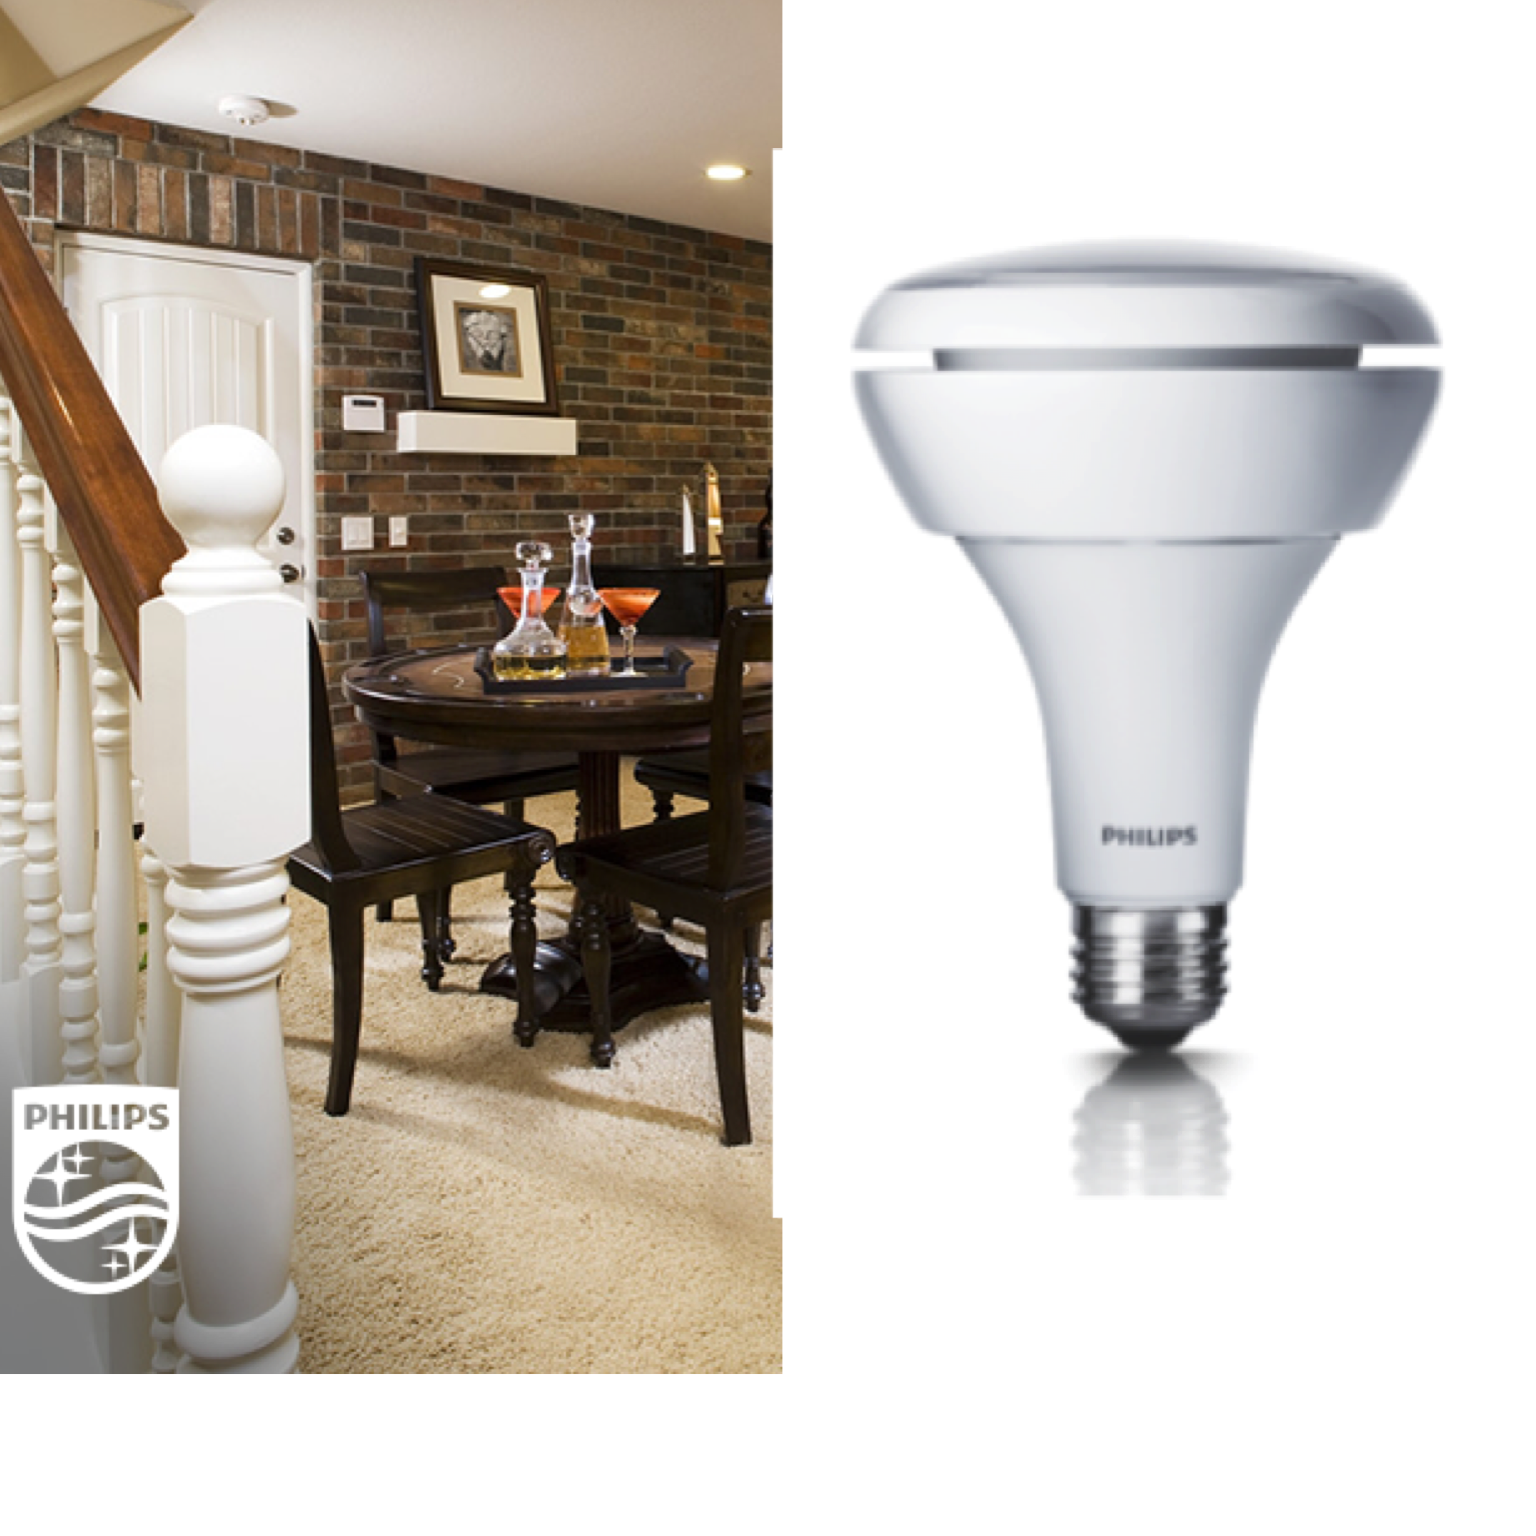 The Philips LED BR30 provides a soft, white light perfect